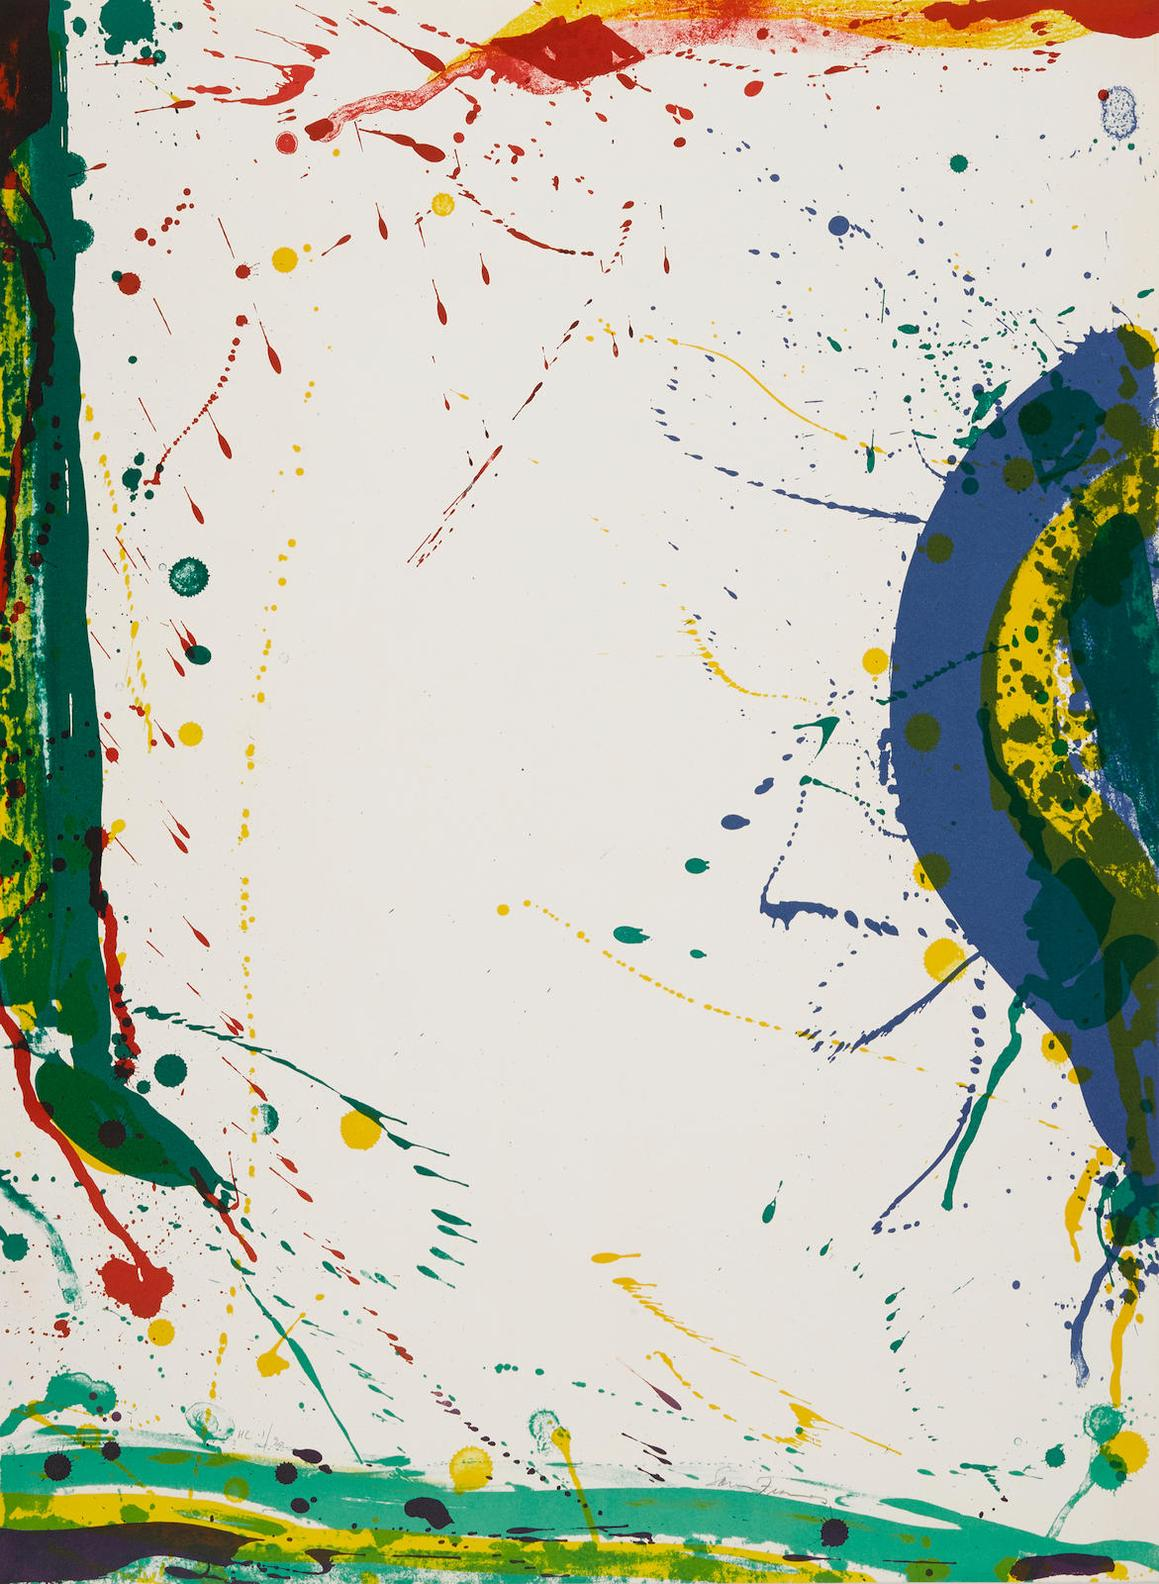 Sam Francis-Untitled, From Michel Waldberg: Poemes Dans Le Ciel-1986